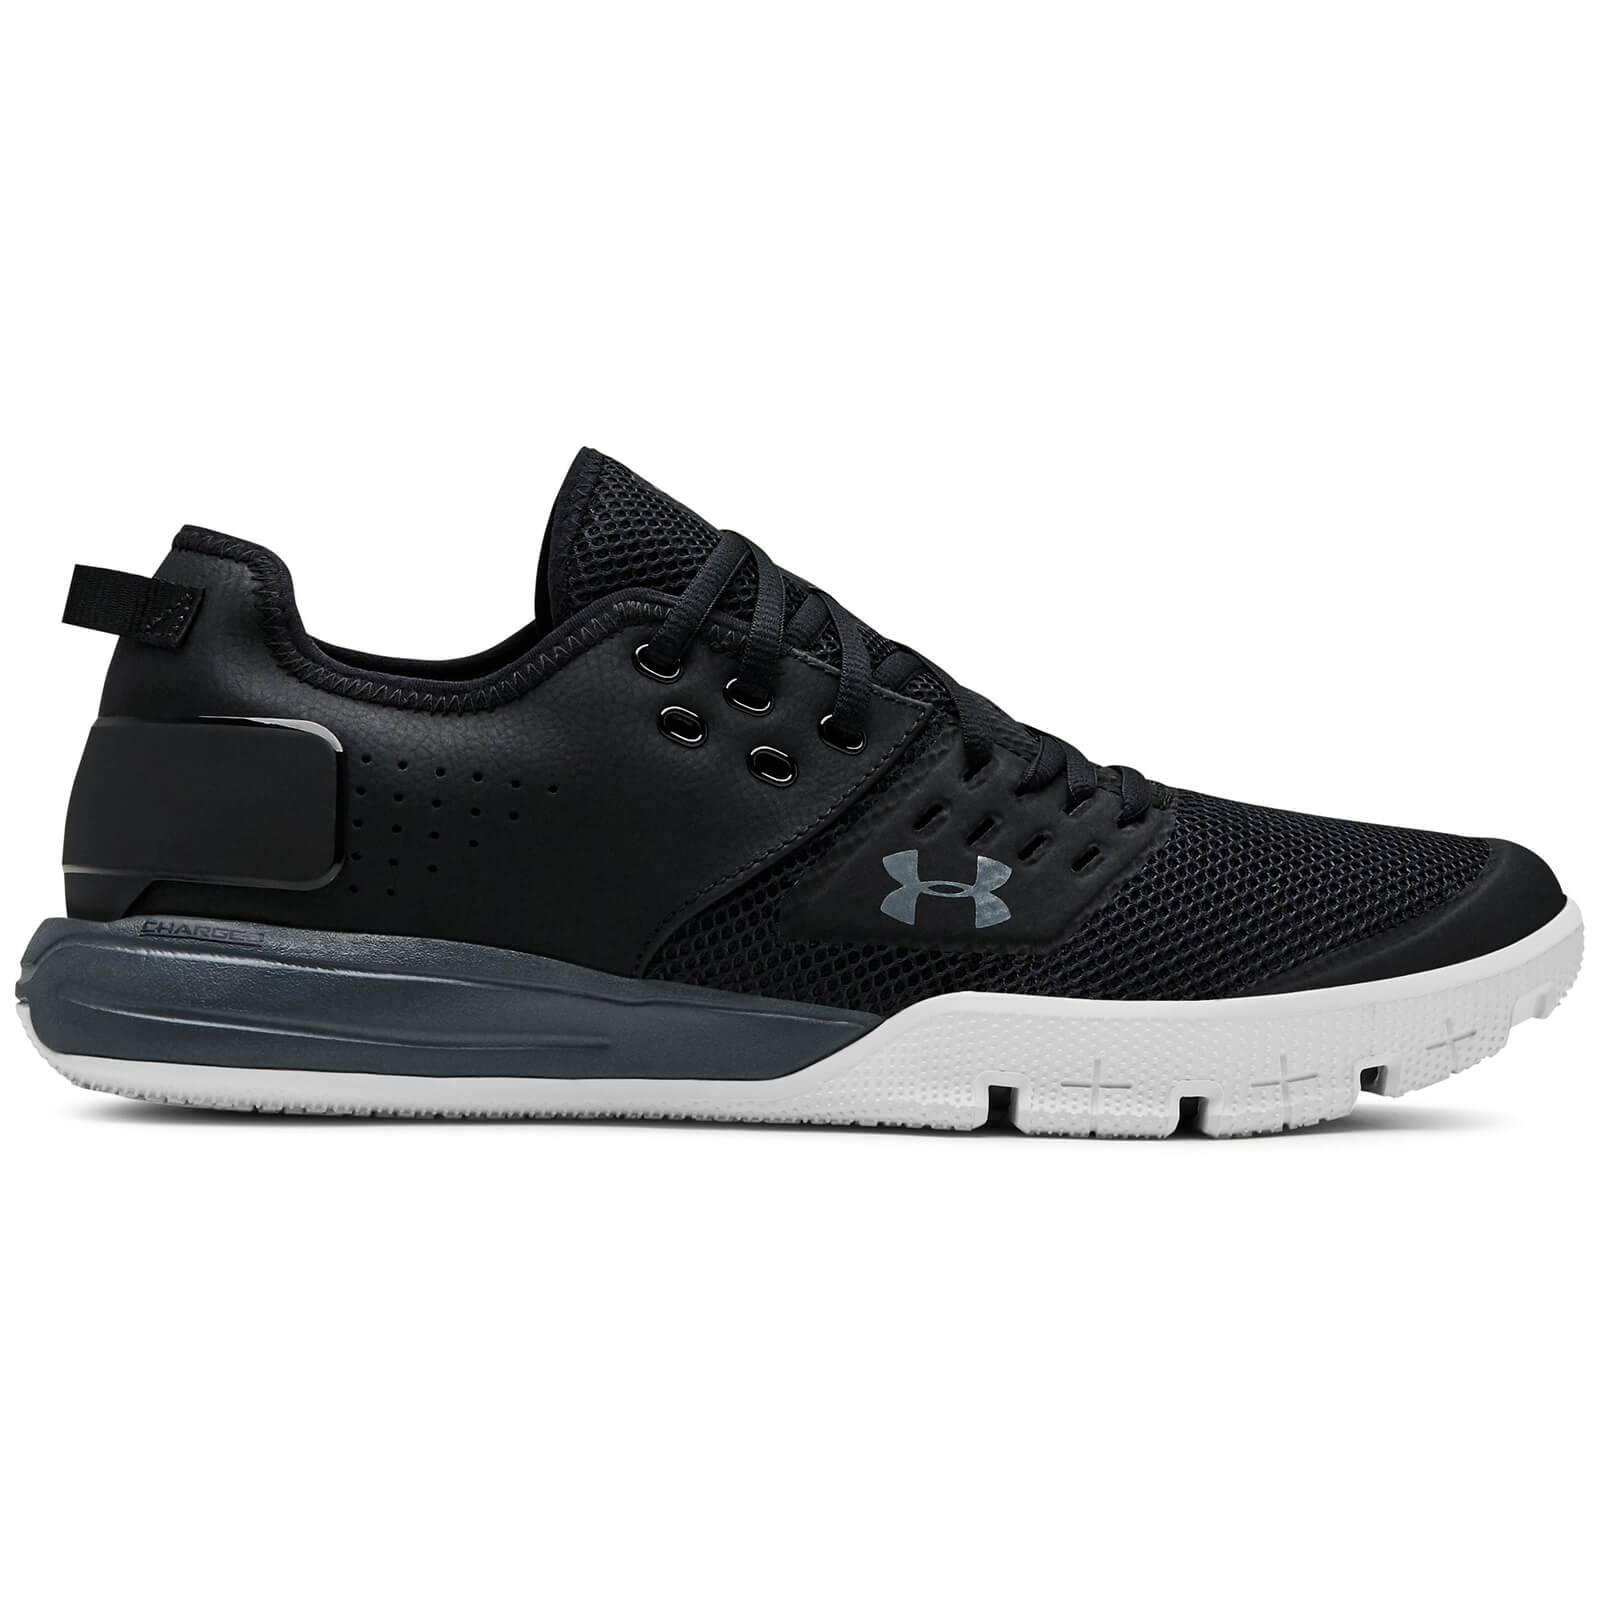 Under Armour Charged Ultimate 3.0 Training Shoes - US 10/UK 9 - Black